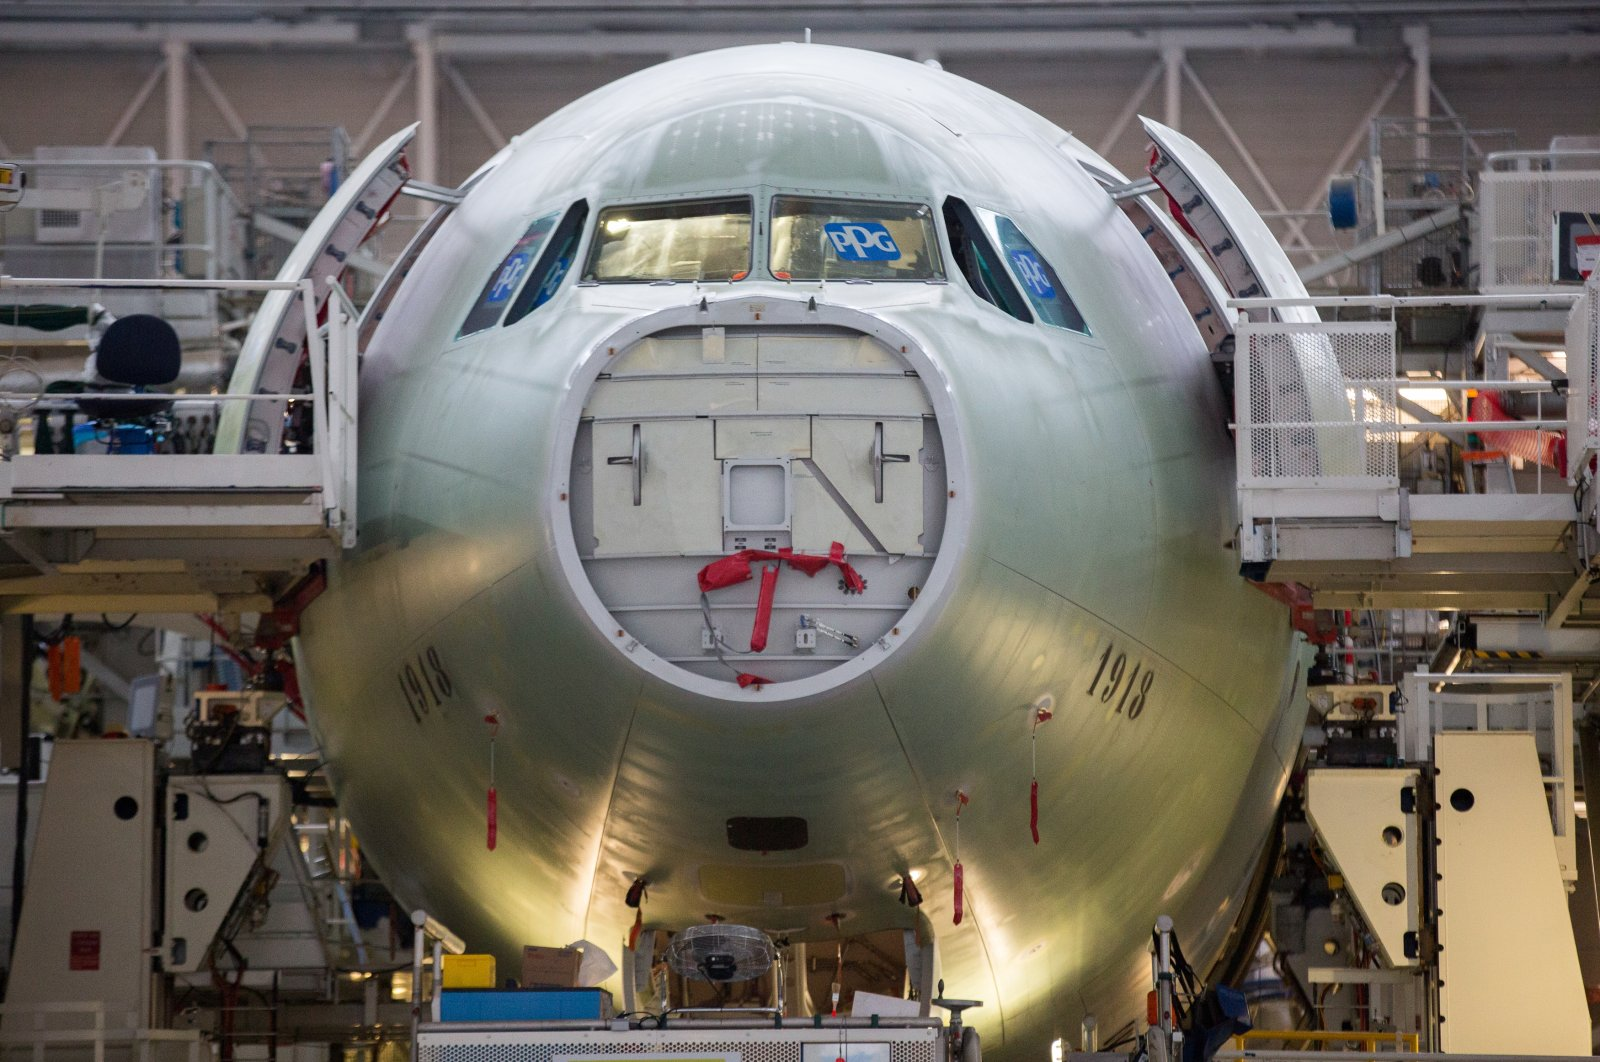 An A330 Airbus aircraft assembly line in Colomiers, France, Nov. 26, 2018. (Reuters Photo)